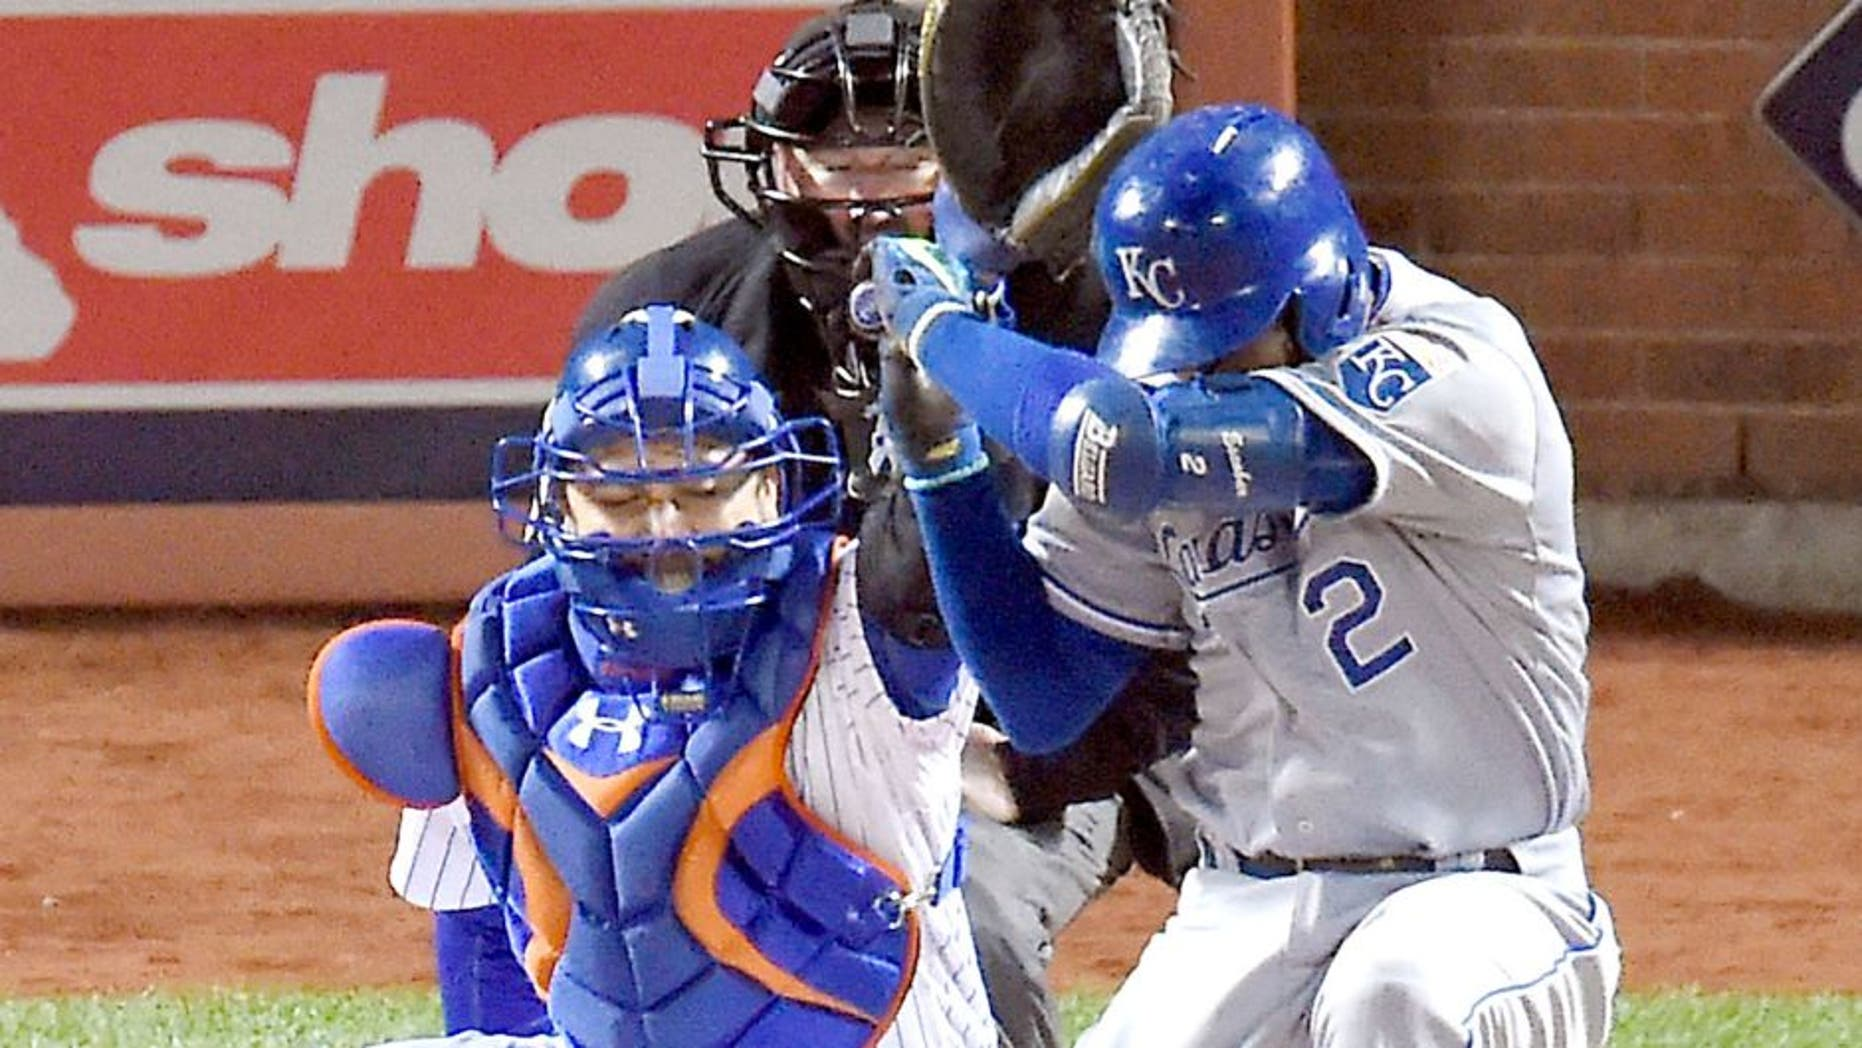 The Kansas City Royals' Alcides Escobar (2) dodges the first pitch by New York Mets pitcher Noah Syndergaard in the first inning during Game 3 of the World Series on Friday, Oct. 30, 2015, at Citi Field in New York. (David Eulitt/Kansas City Star/TNS via Getty Images)